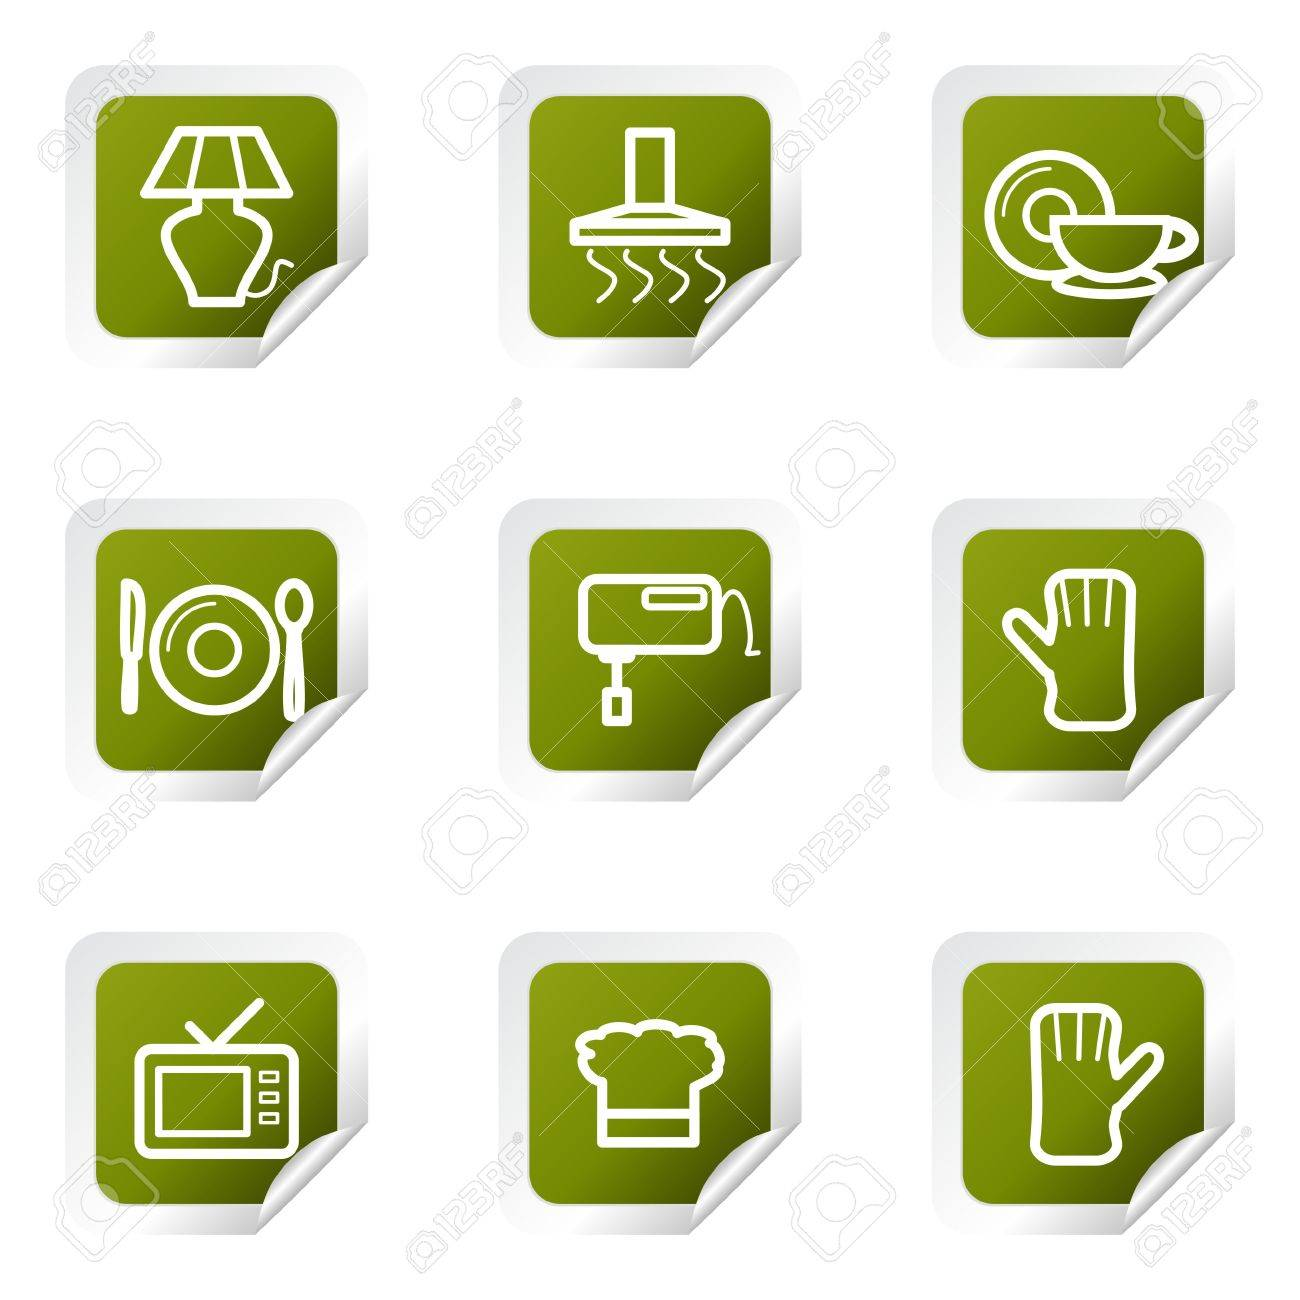 Set of 9 glossy web icons (set 33). Green square with corner. Stock Vector - 14736207